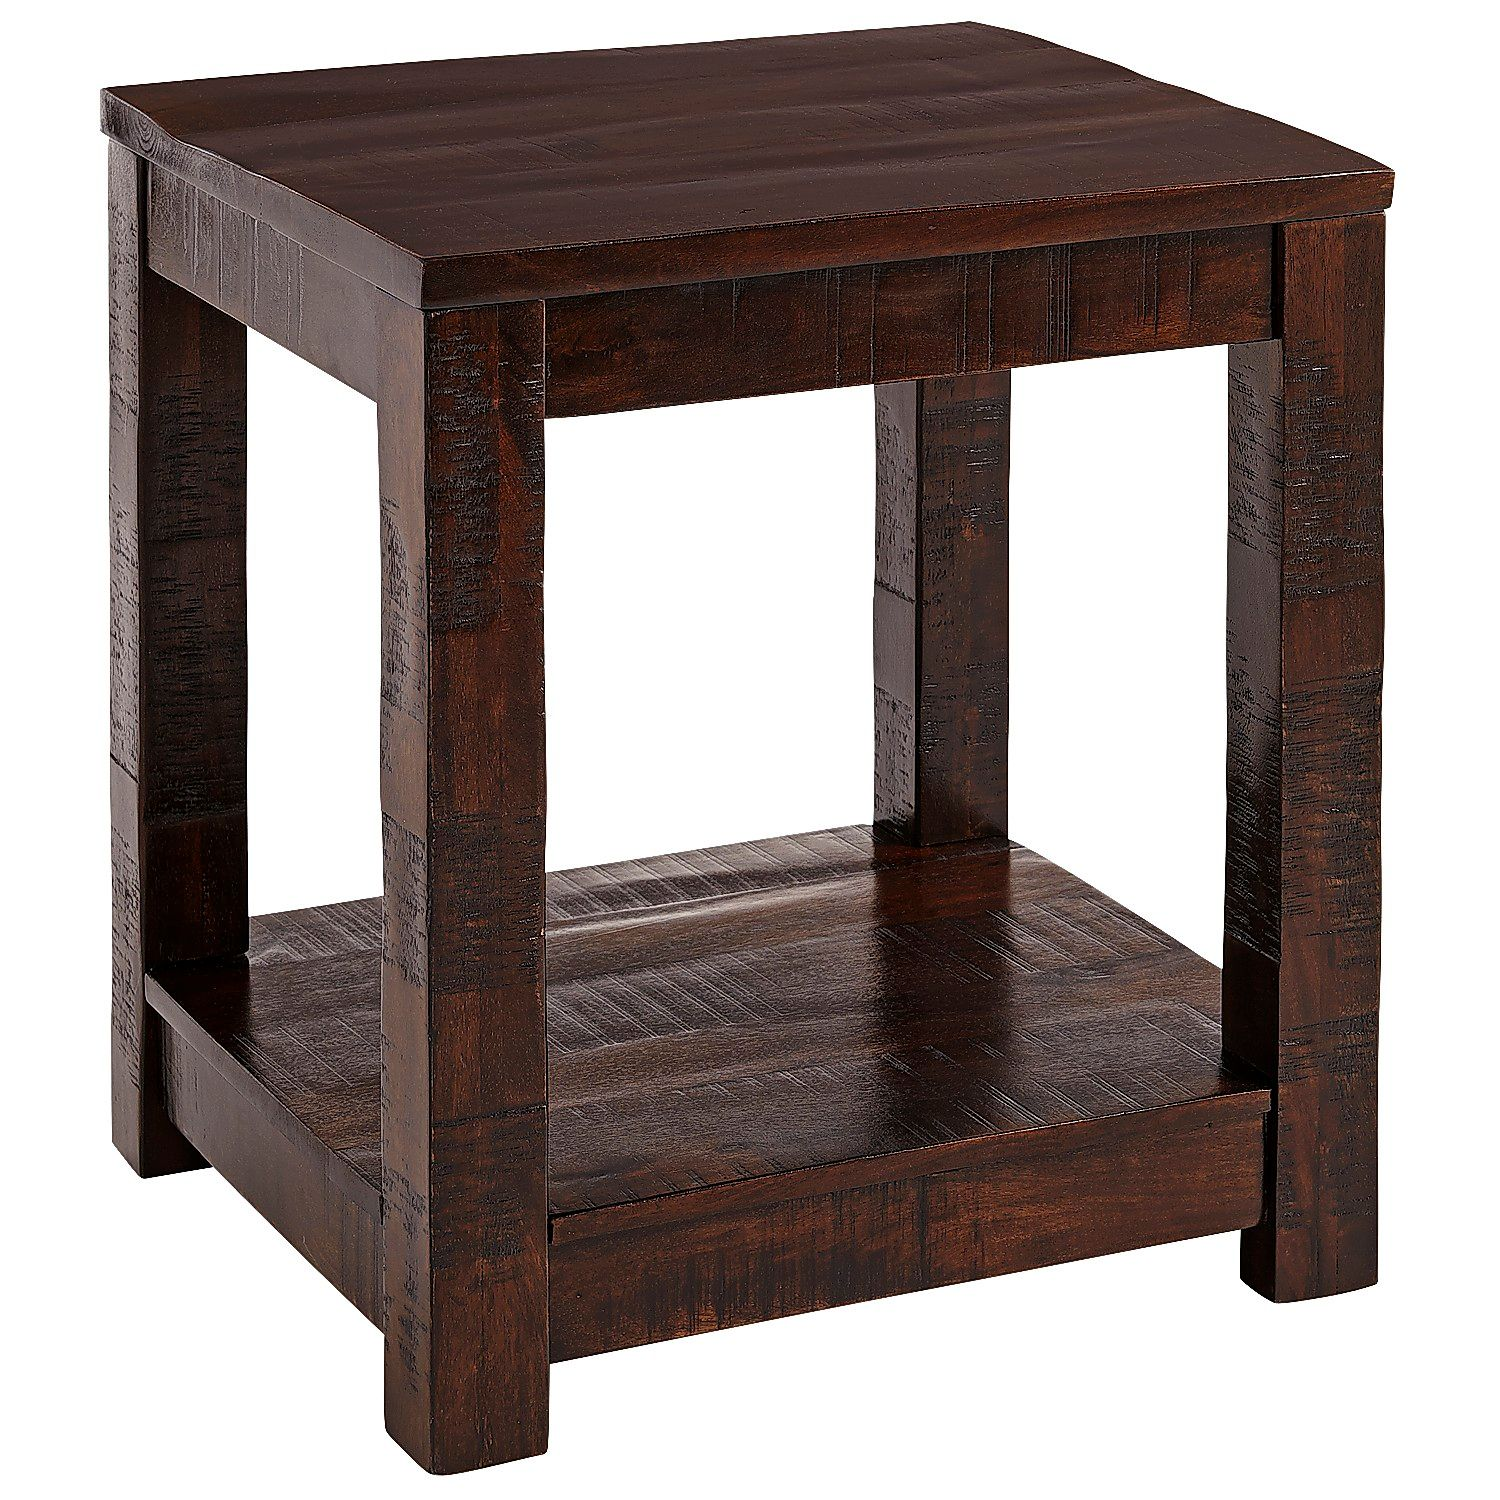 parsons tobacco brown end table pier imports accent tables rustic wine rack threshold teal ethan allen painted furniture meyda tiffany dragonfly lamp oval coffee with shelf glass